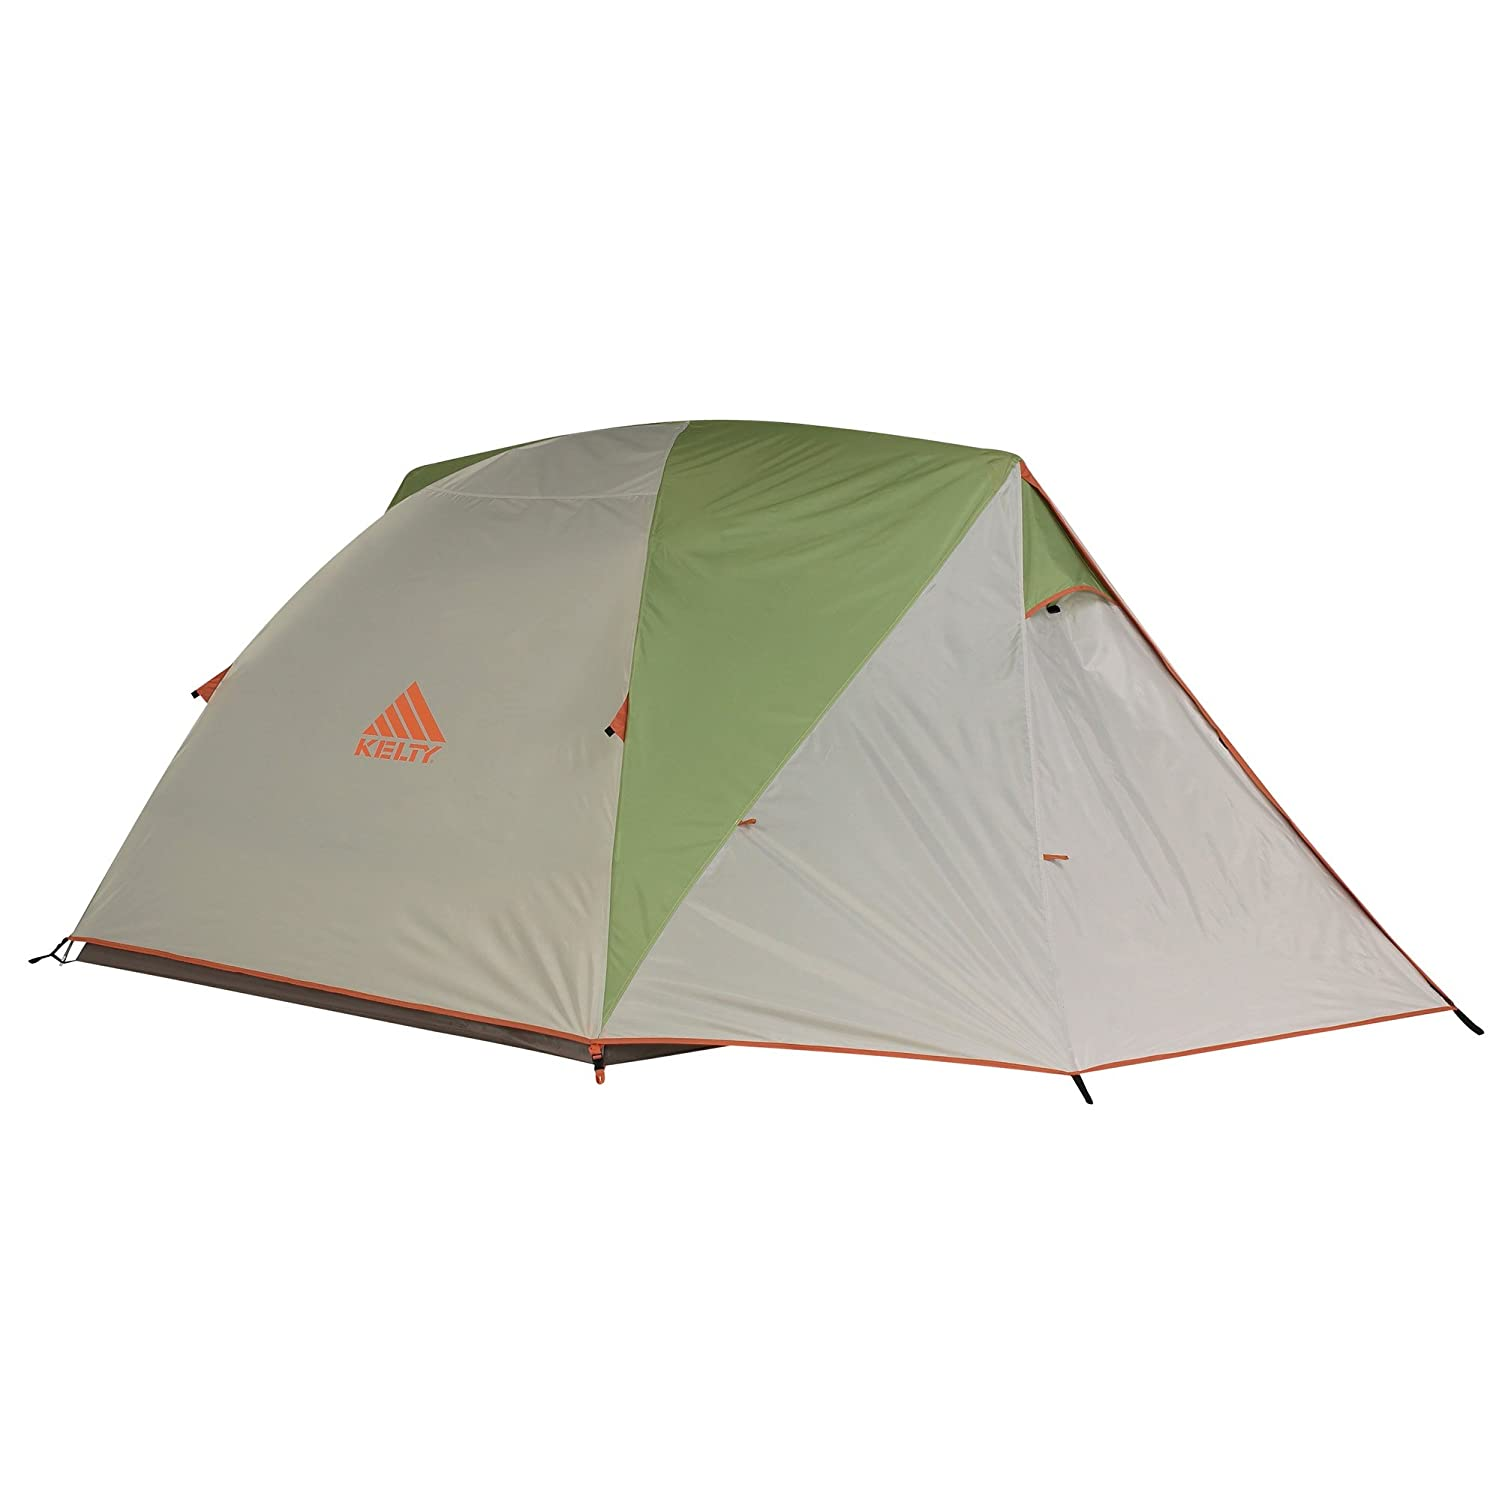 Amazon.com  Kelty Acadia 4-Person Tent  Family Tents  Sports u0026 Outdoors  sc 1 st  Amazon.com & Amazon.com : Kelty Acadia 4-Person Tent : Family Tents : Sports ...